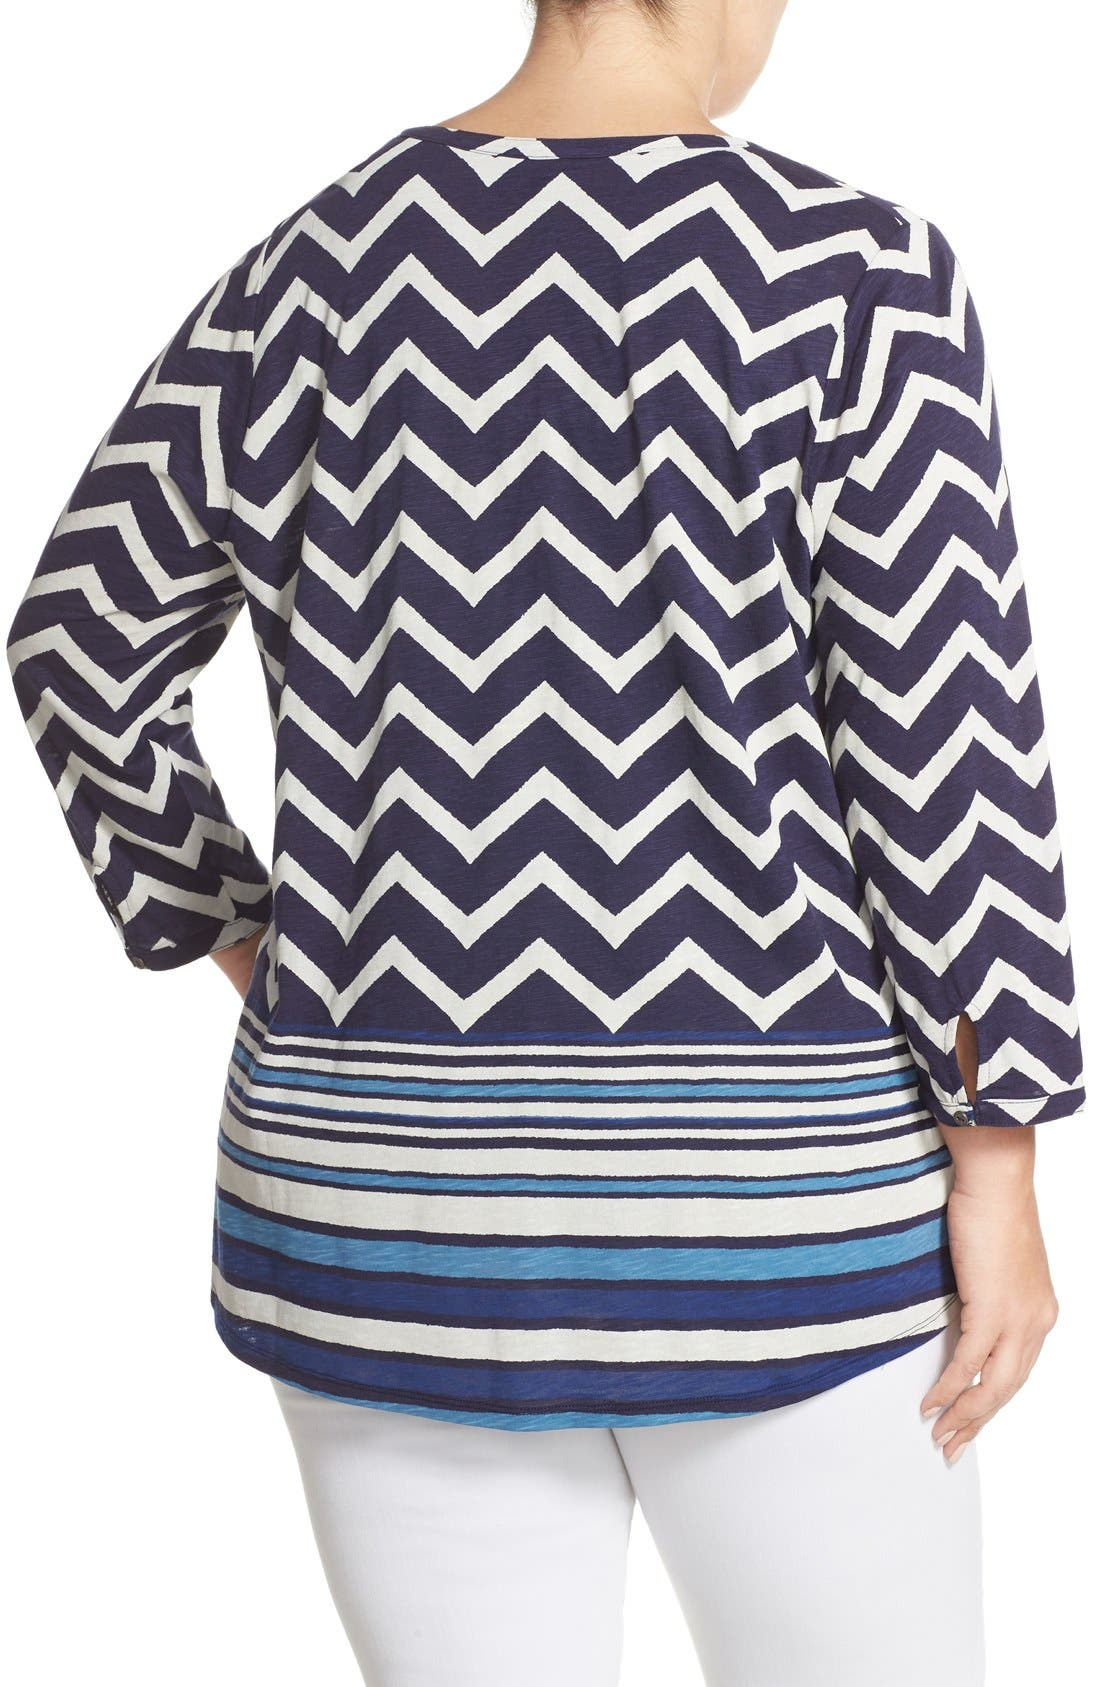 LUCKY BRAND, Chevron Stripe Split Neck Top, Alternate thumbnail 3, color, 400